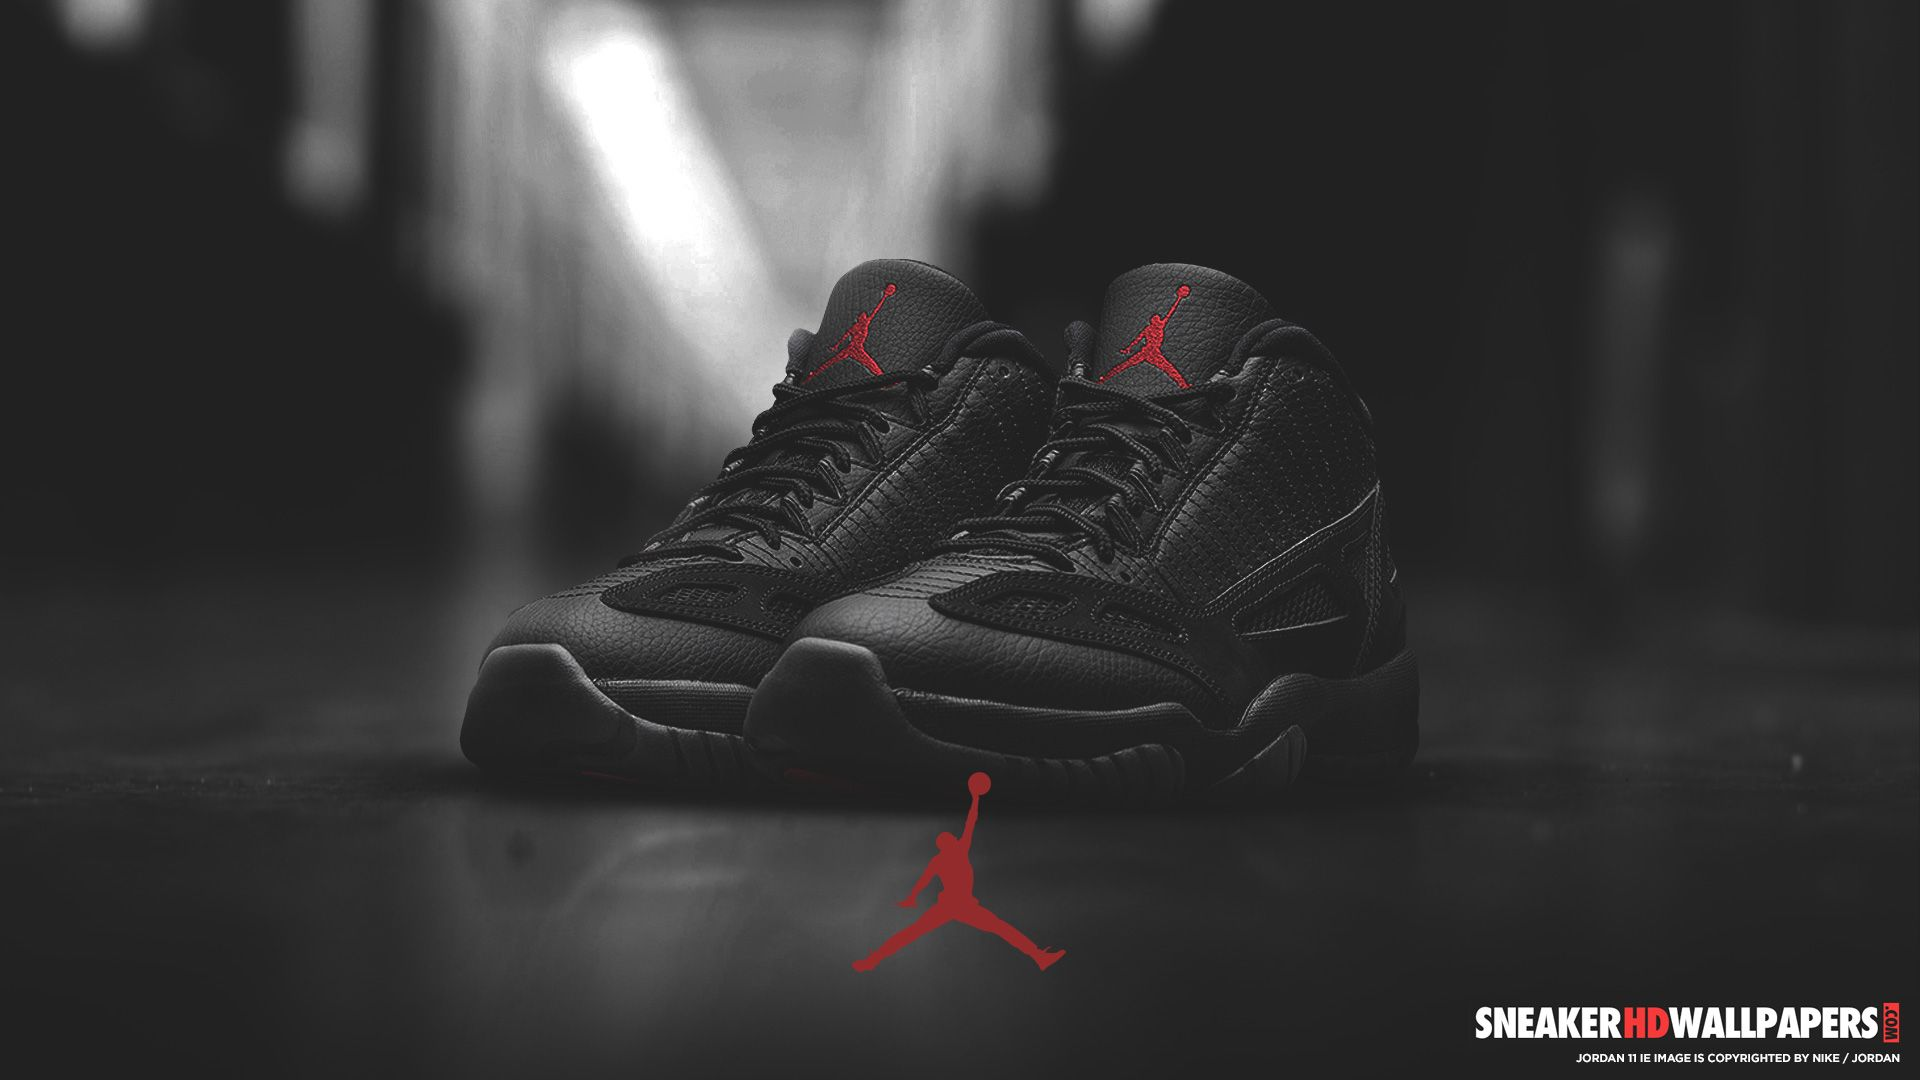 Air Jordan Shoes HD Backgrounds i